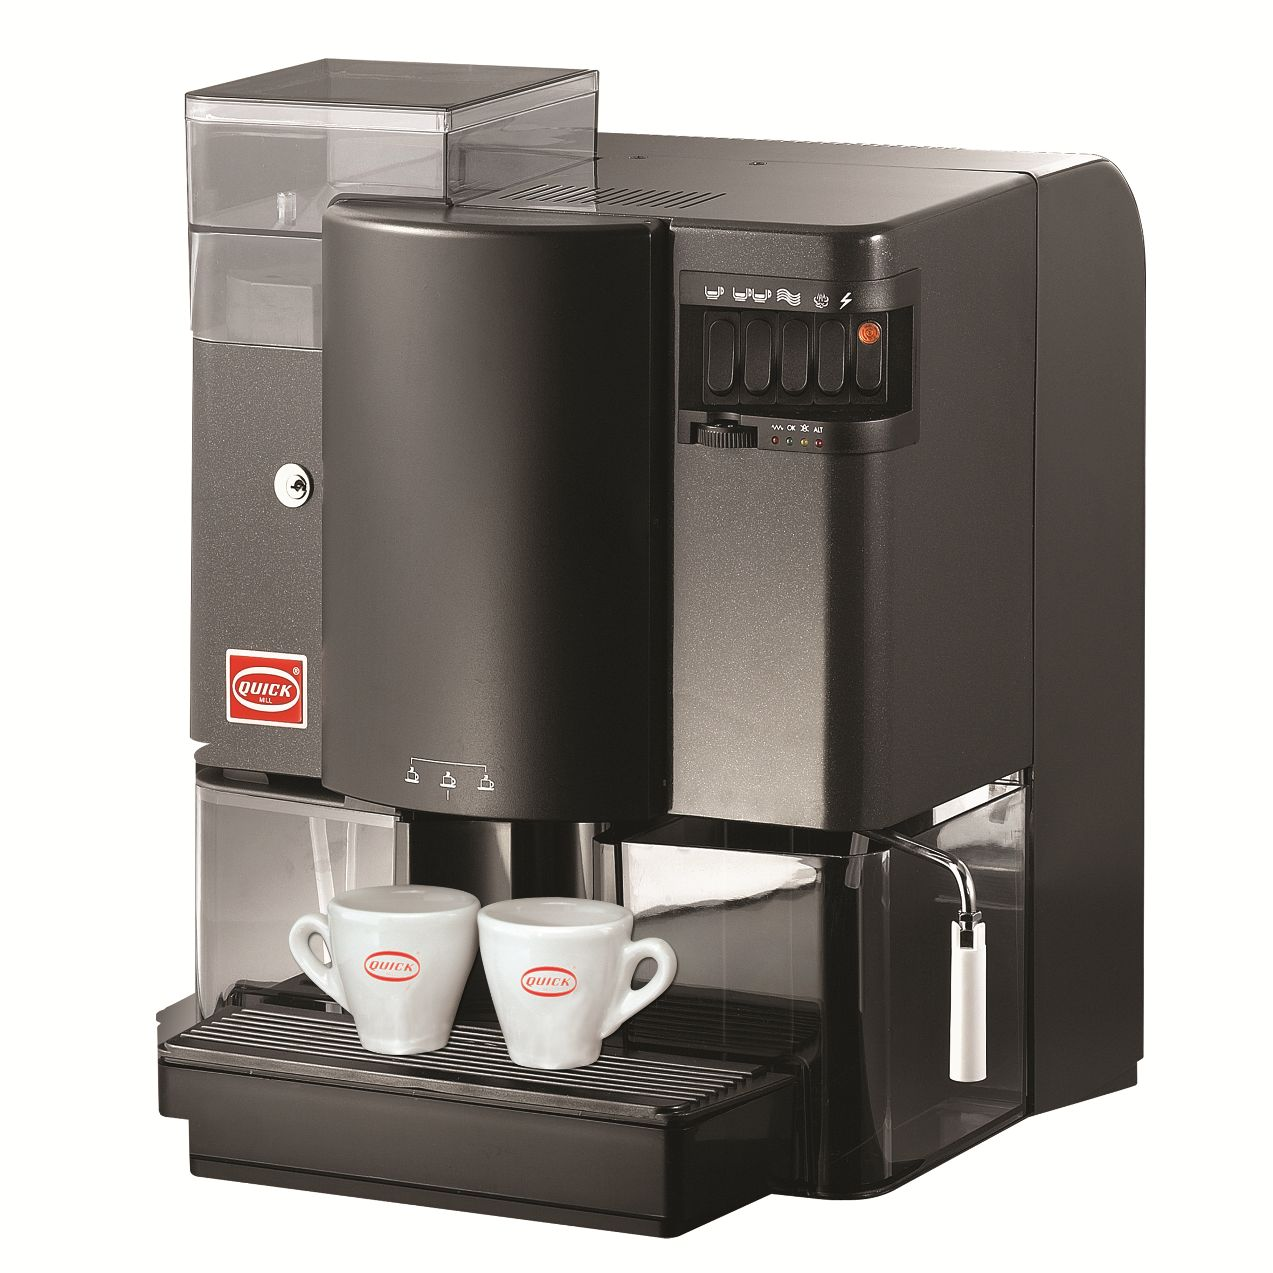 Super-automatic coffee machine Quick Mill Profesional MOD.05000, ABS